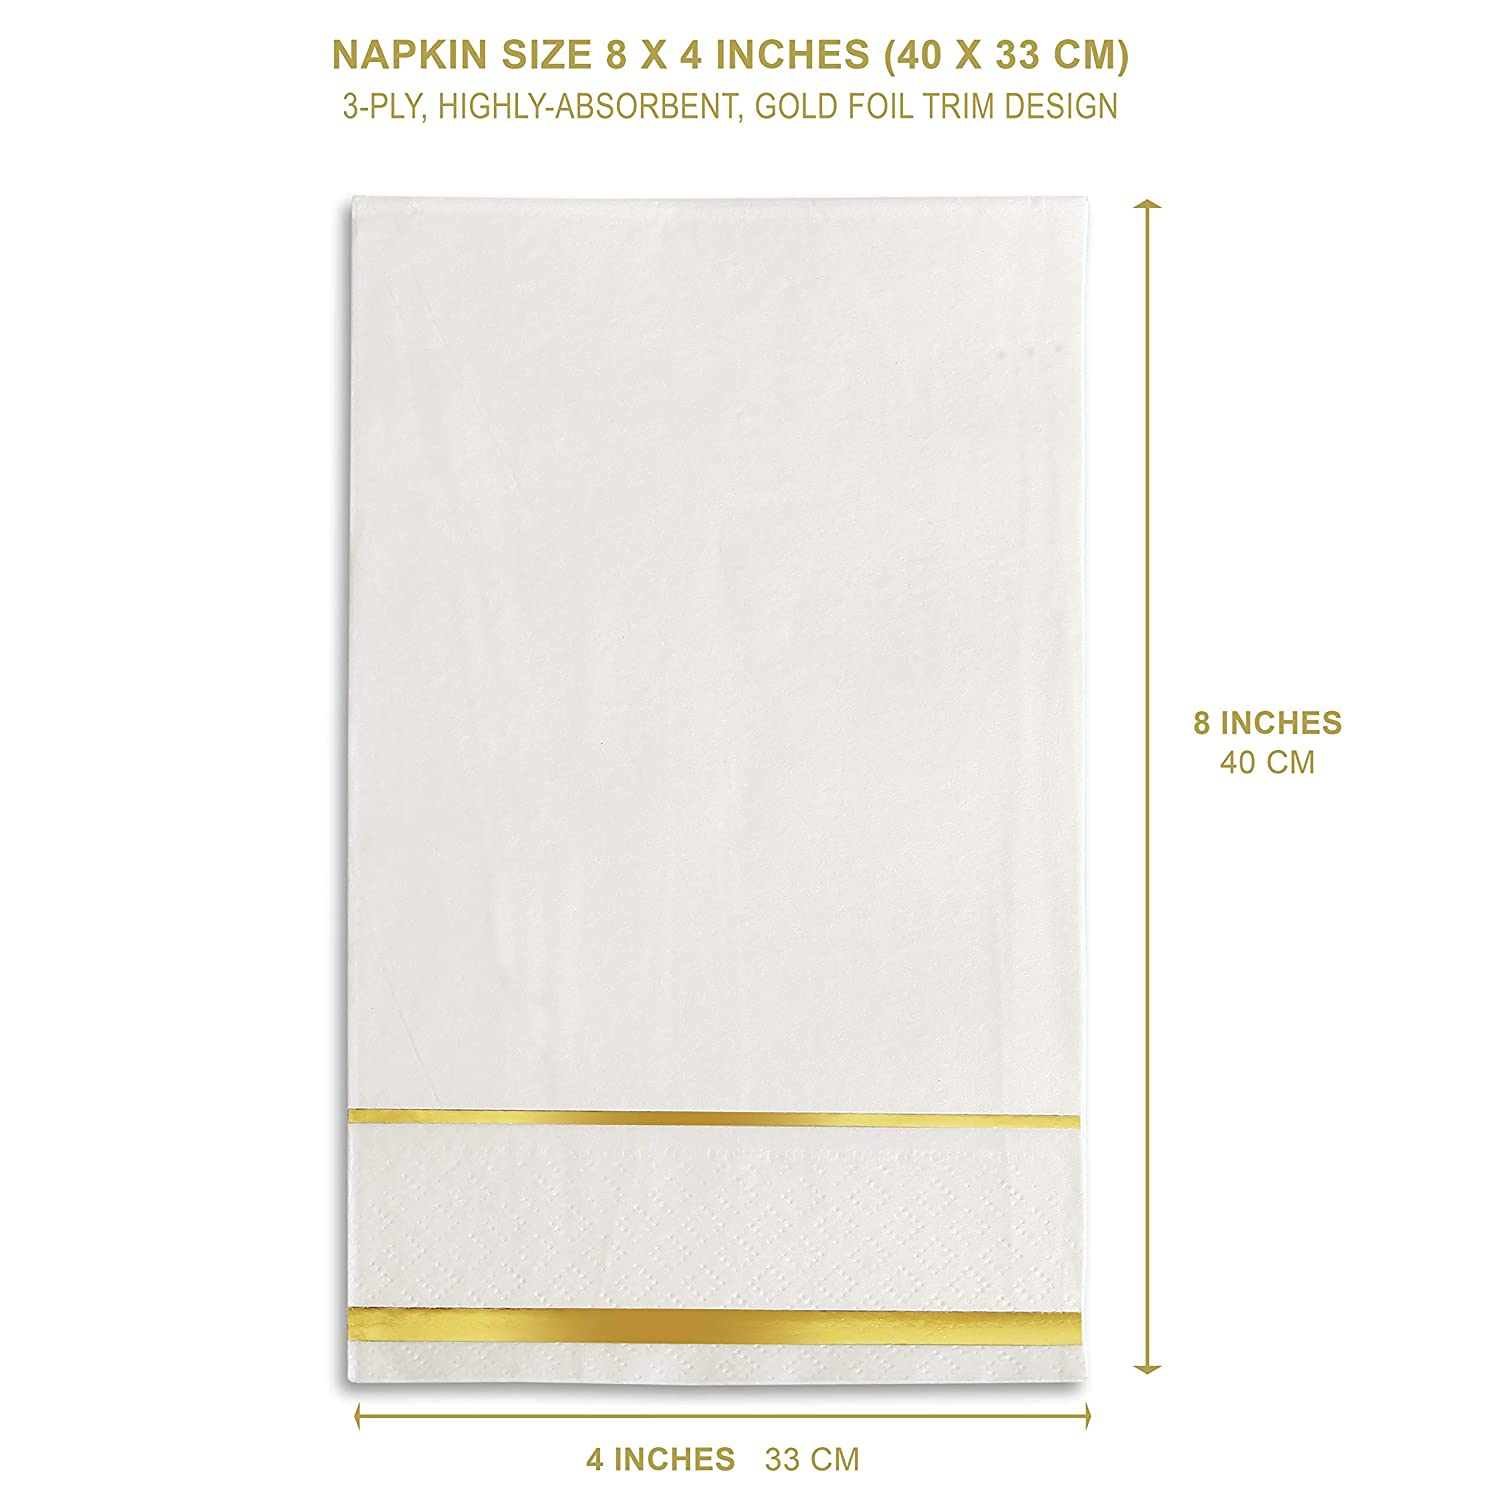 8 x 4 Inches Wedding Napkins Gold Trim White and Gold Paper Party Napkins GLAM Paper Napkins 100 Pack Disposable Dinner Napkins